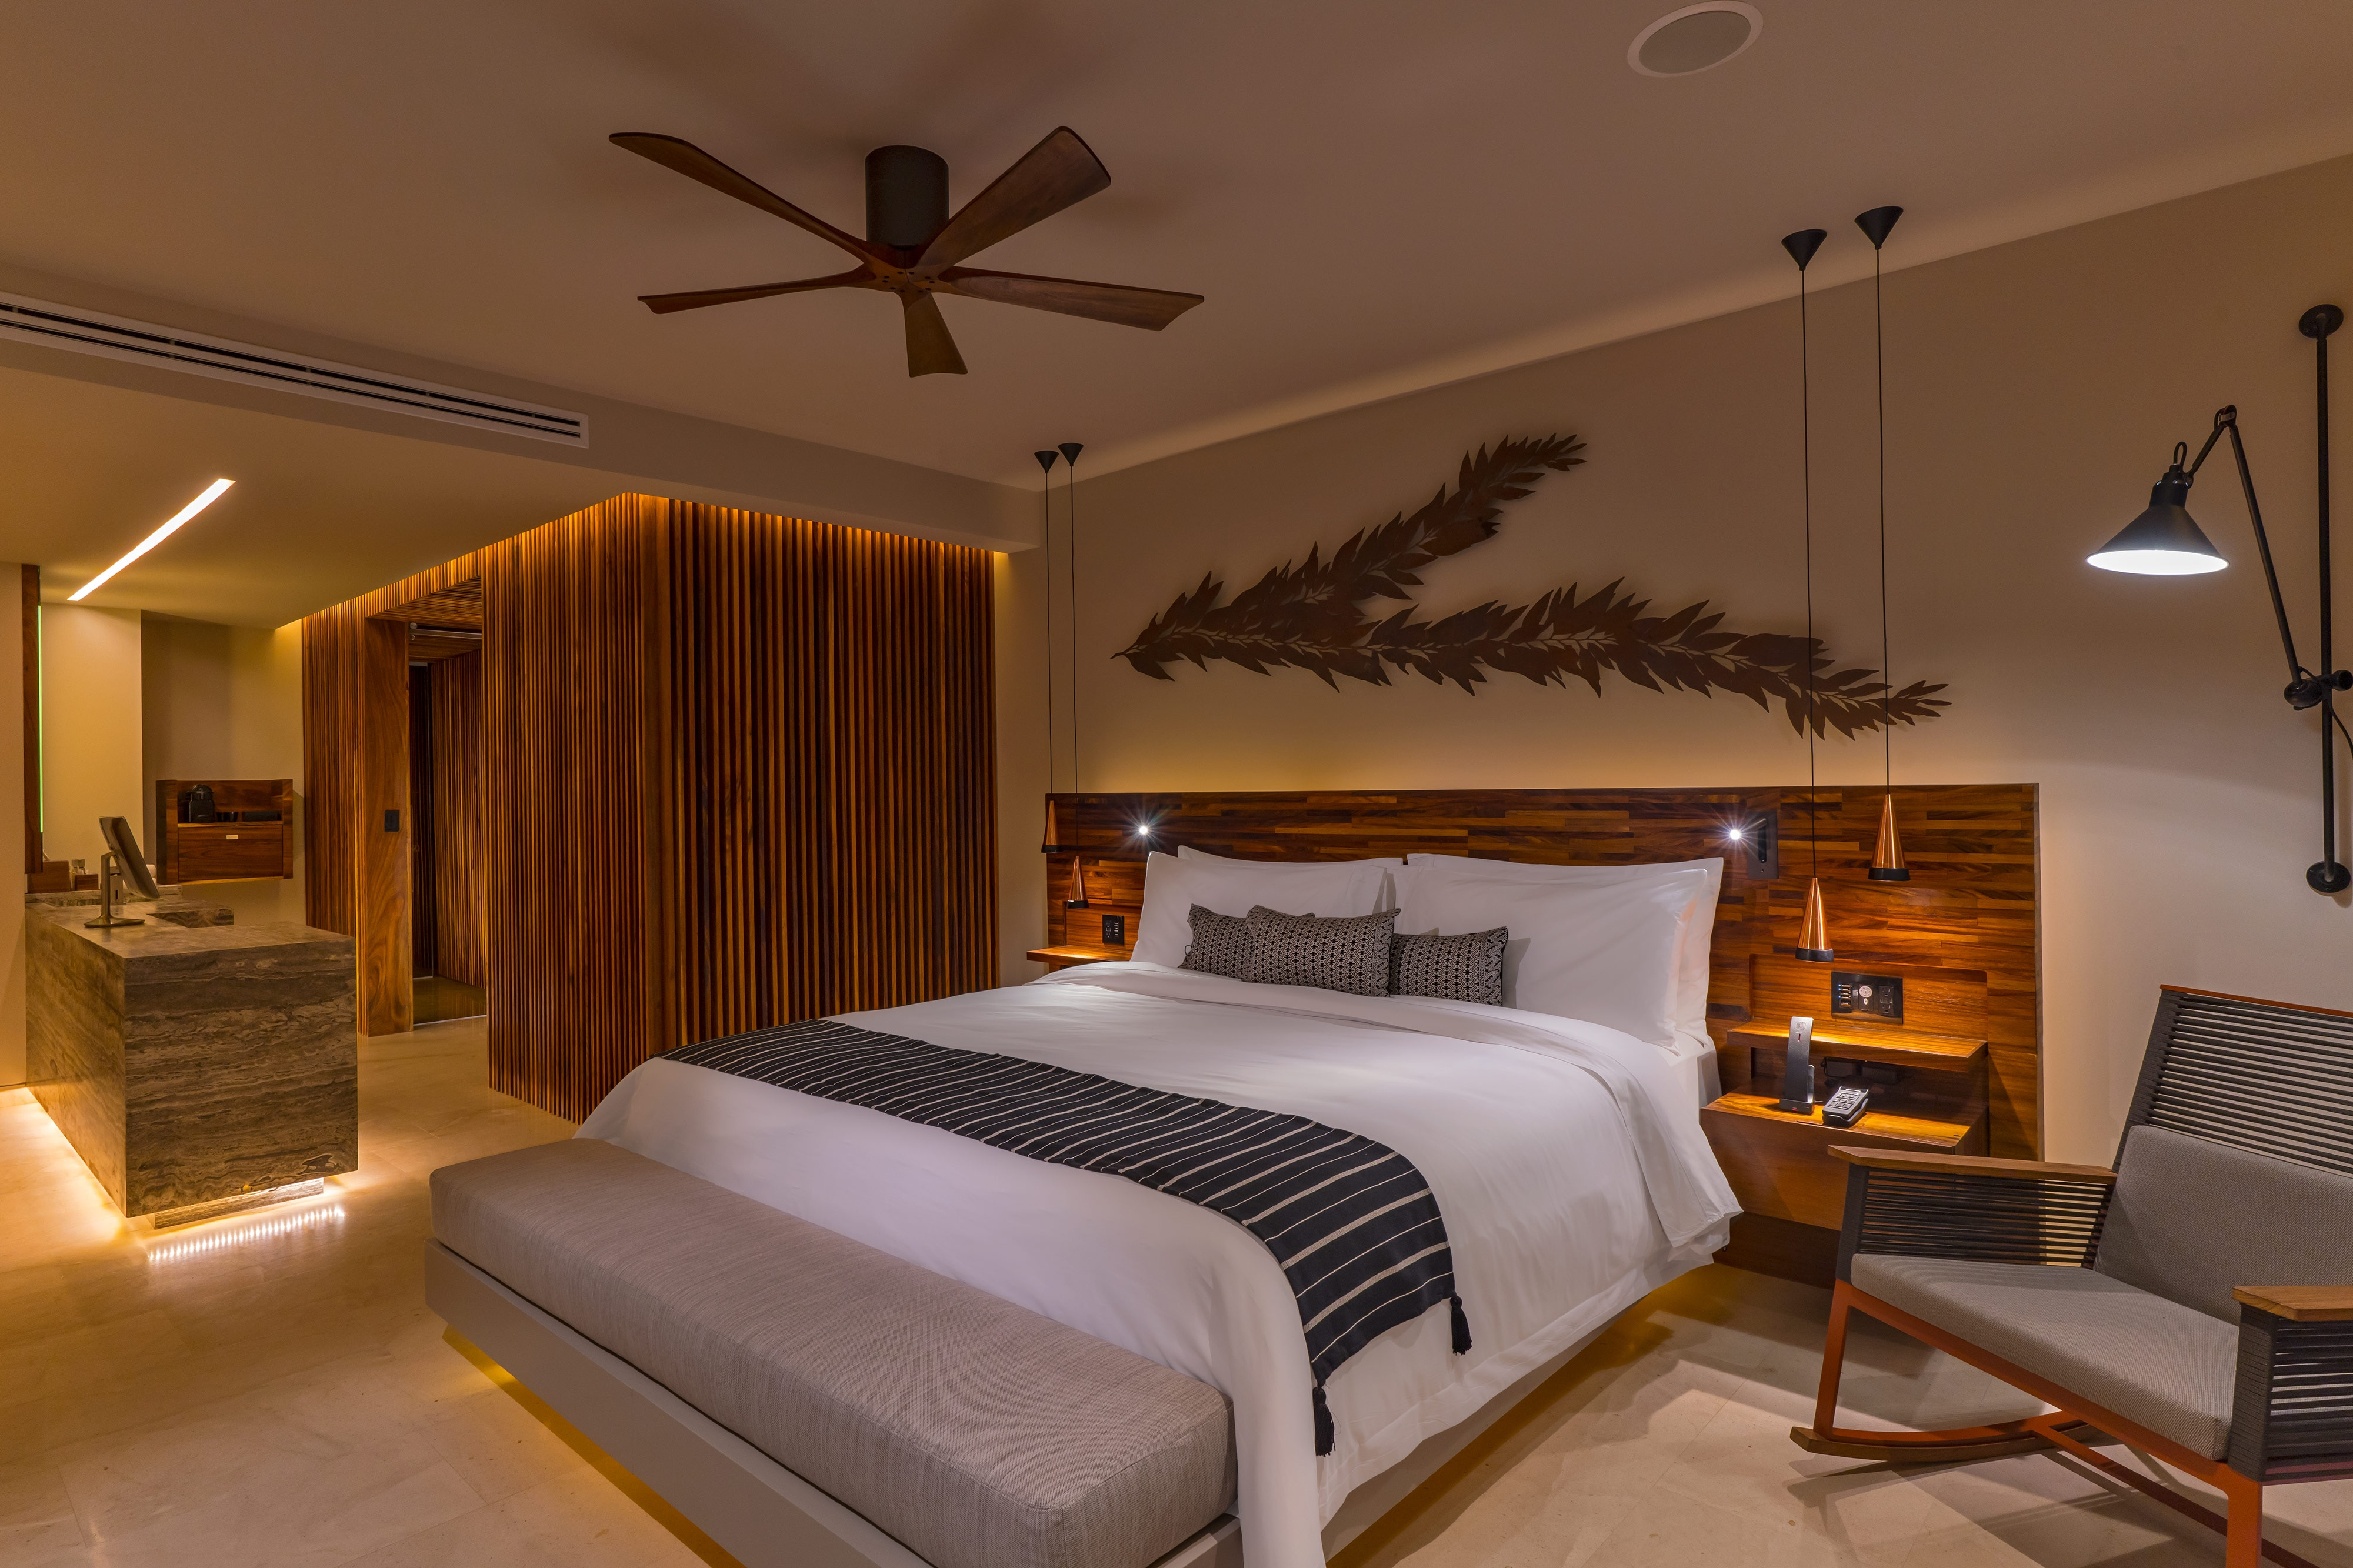 King Grand Guest Room